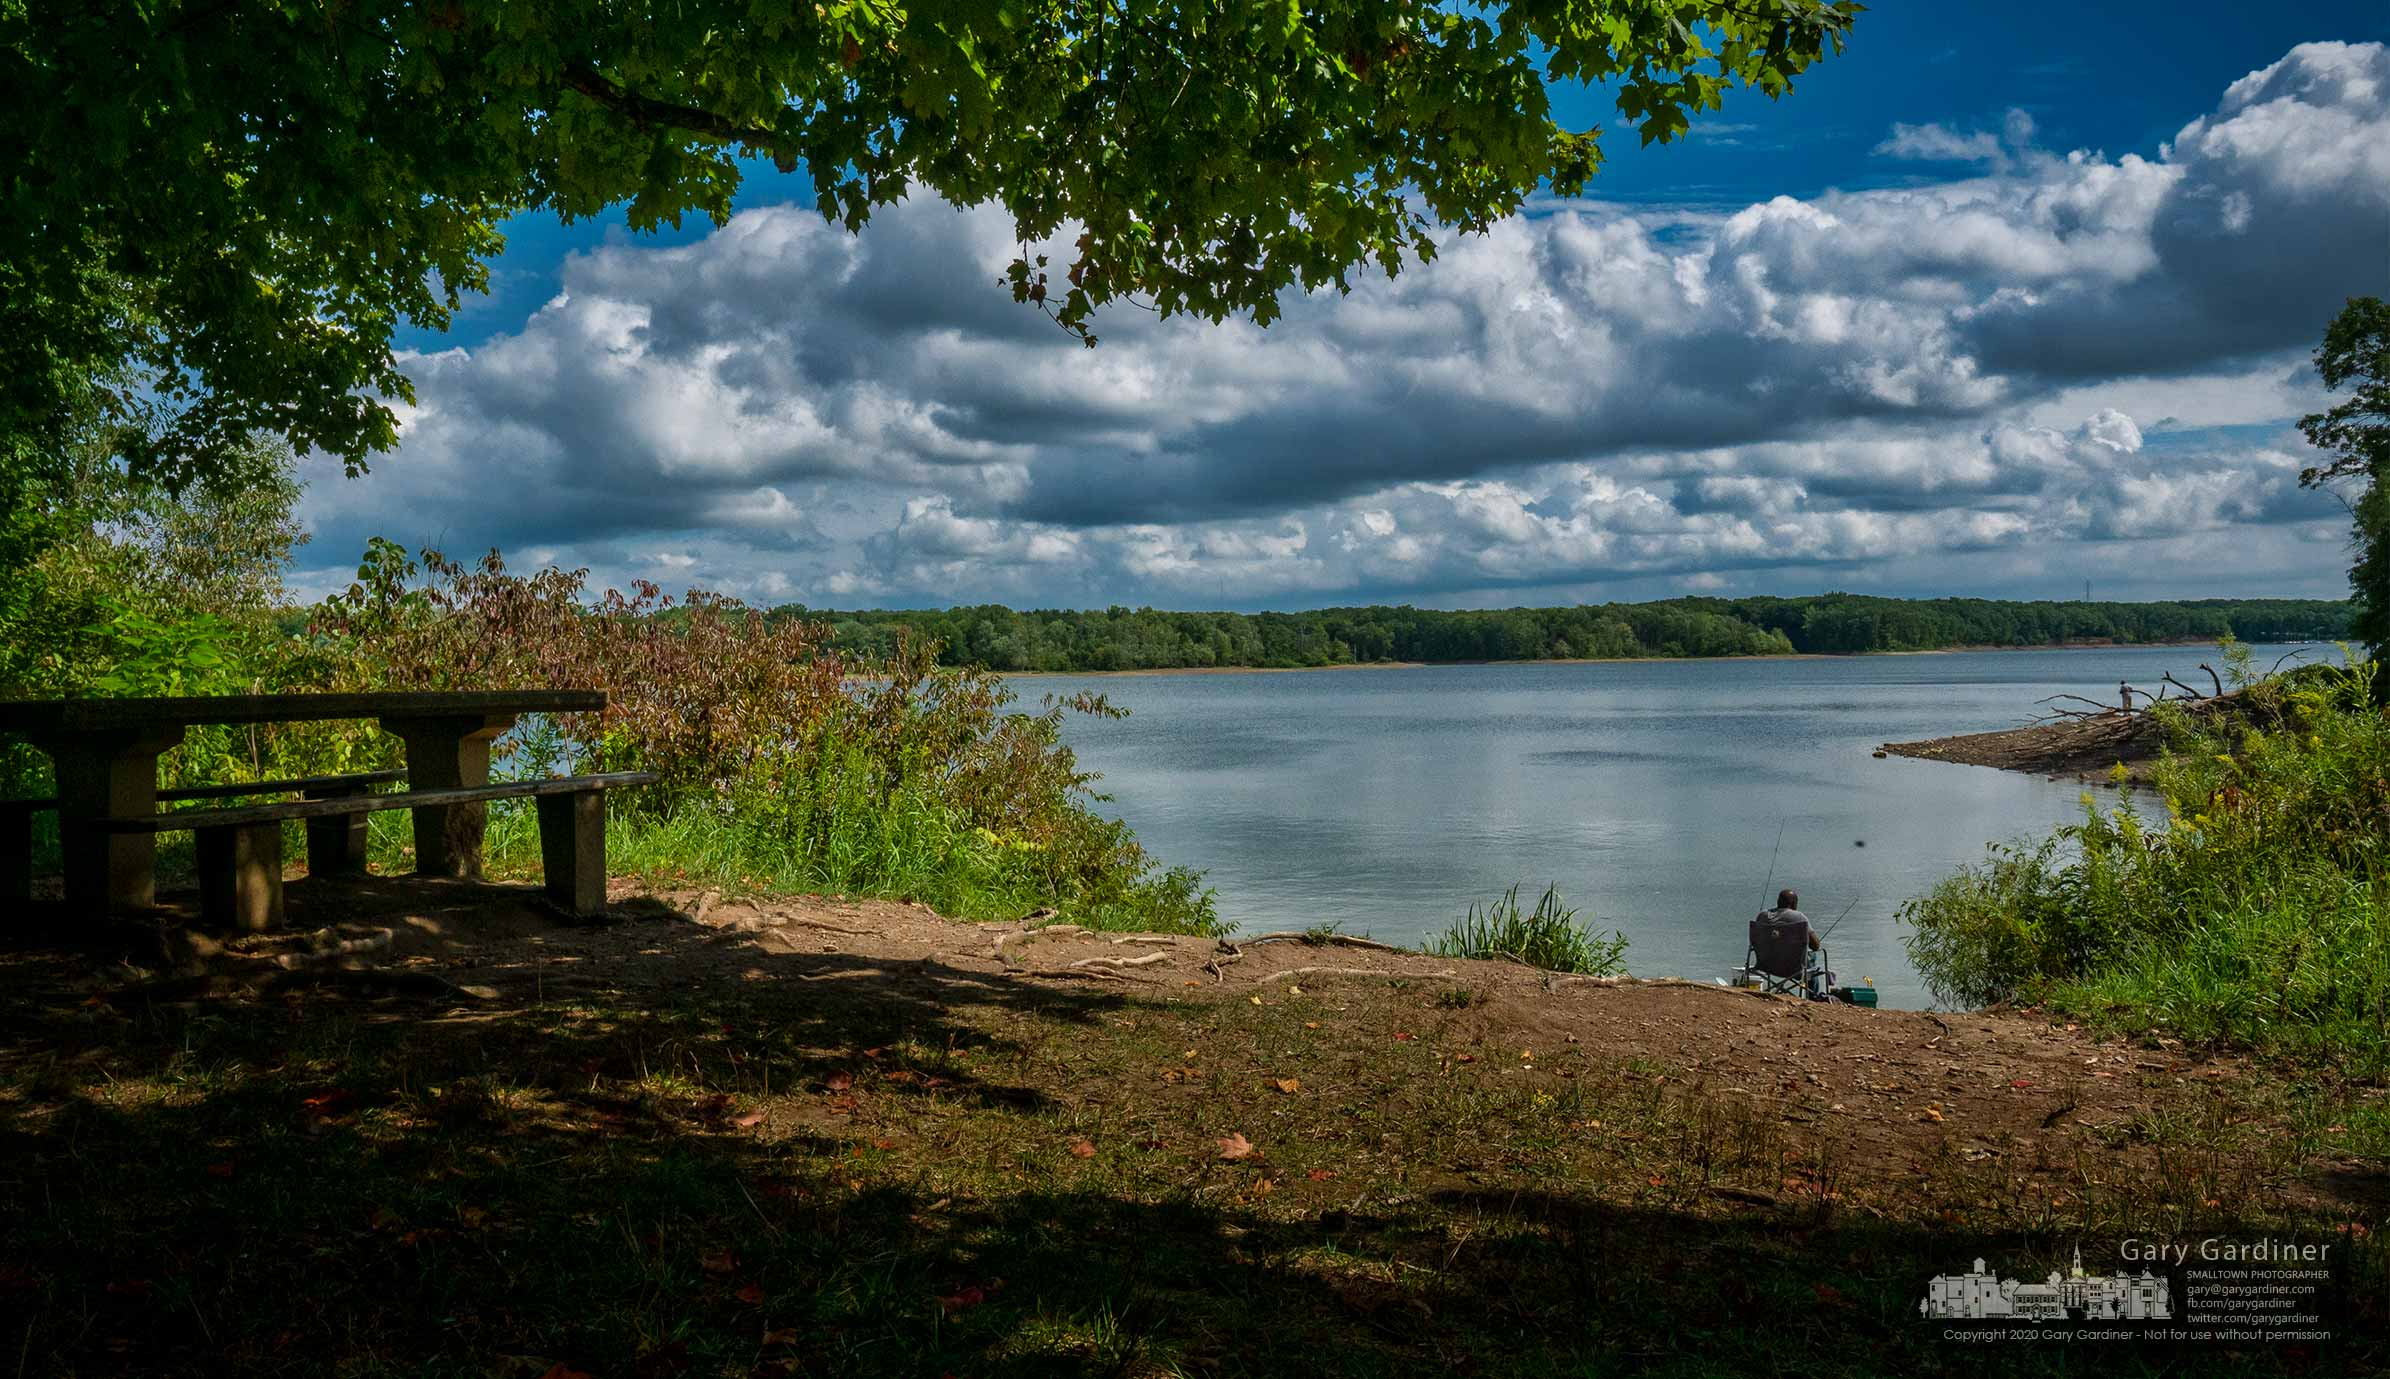 A fisherman rests in a comfortable chair beneath a summer sky on the shoreline of Hoover Reservoir hoping for a little luck at the waters off Red Bank Park. My Final Photo for Sept. 2, 2020.